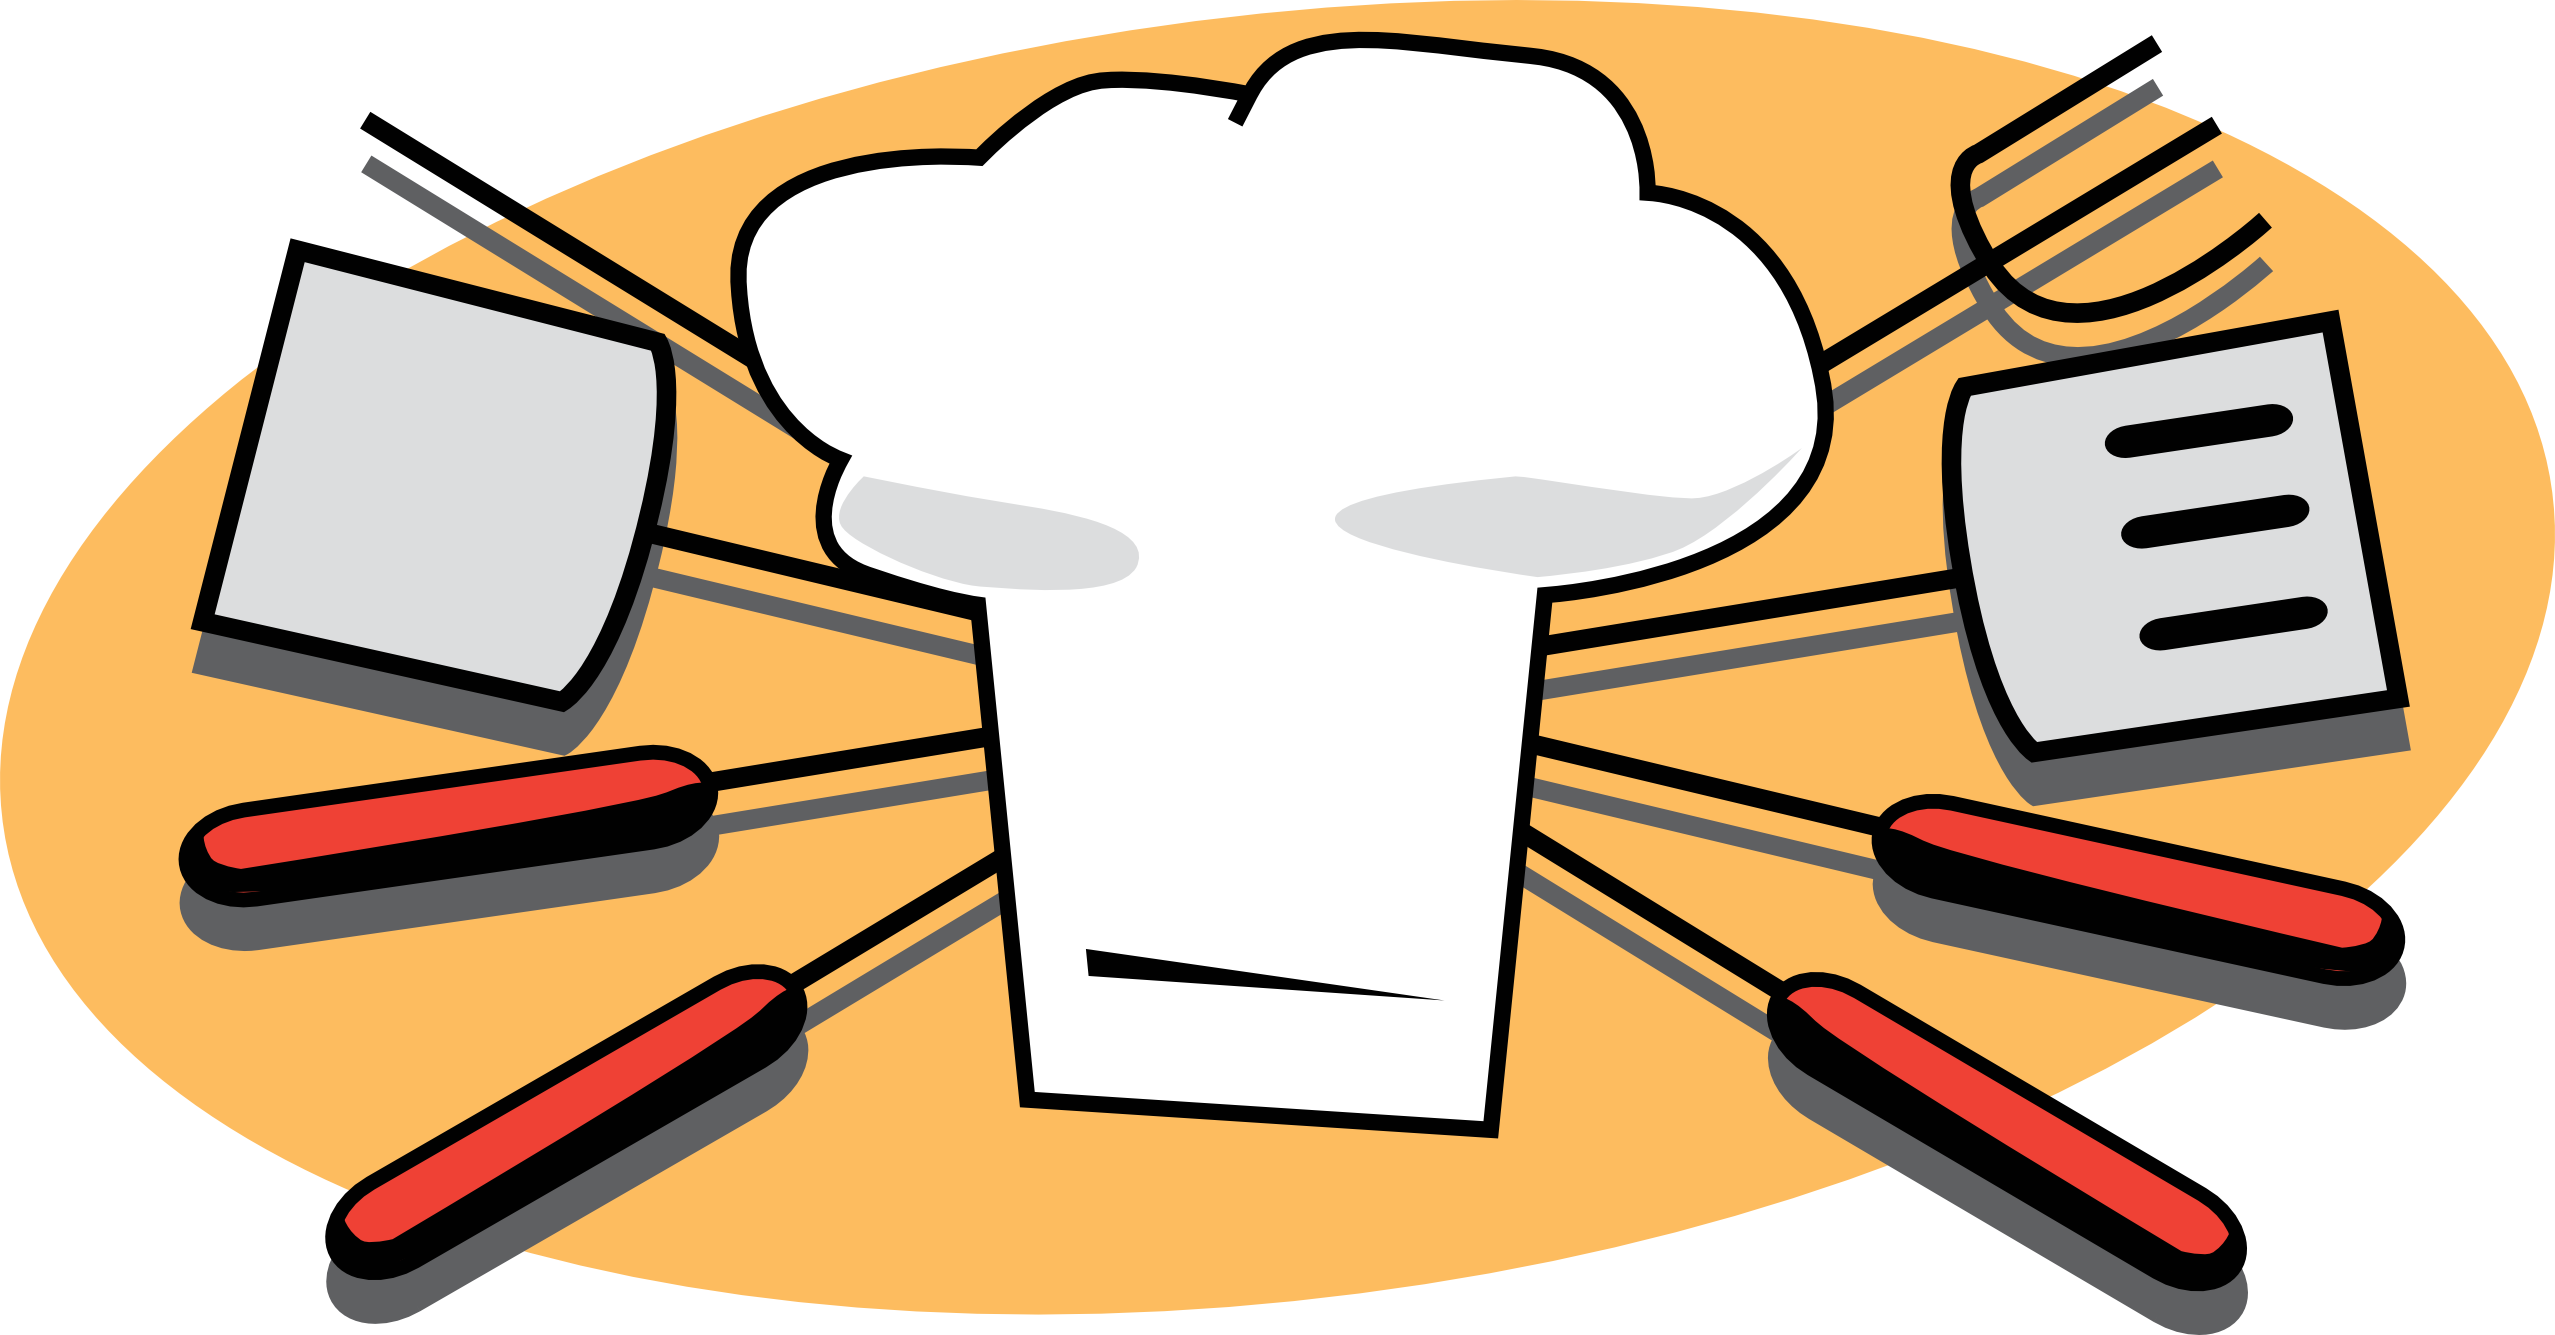 Free cookout clipart.